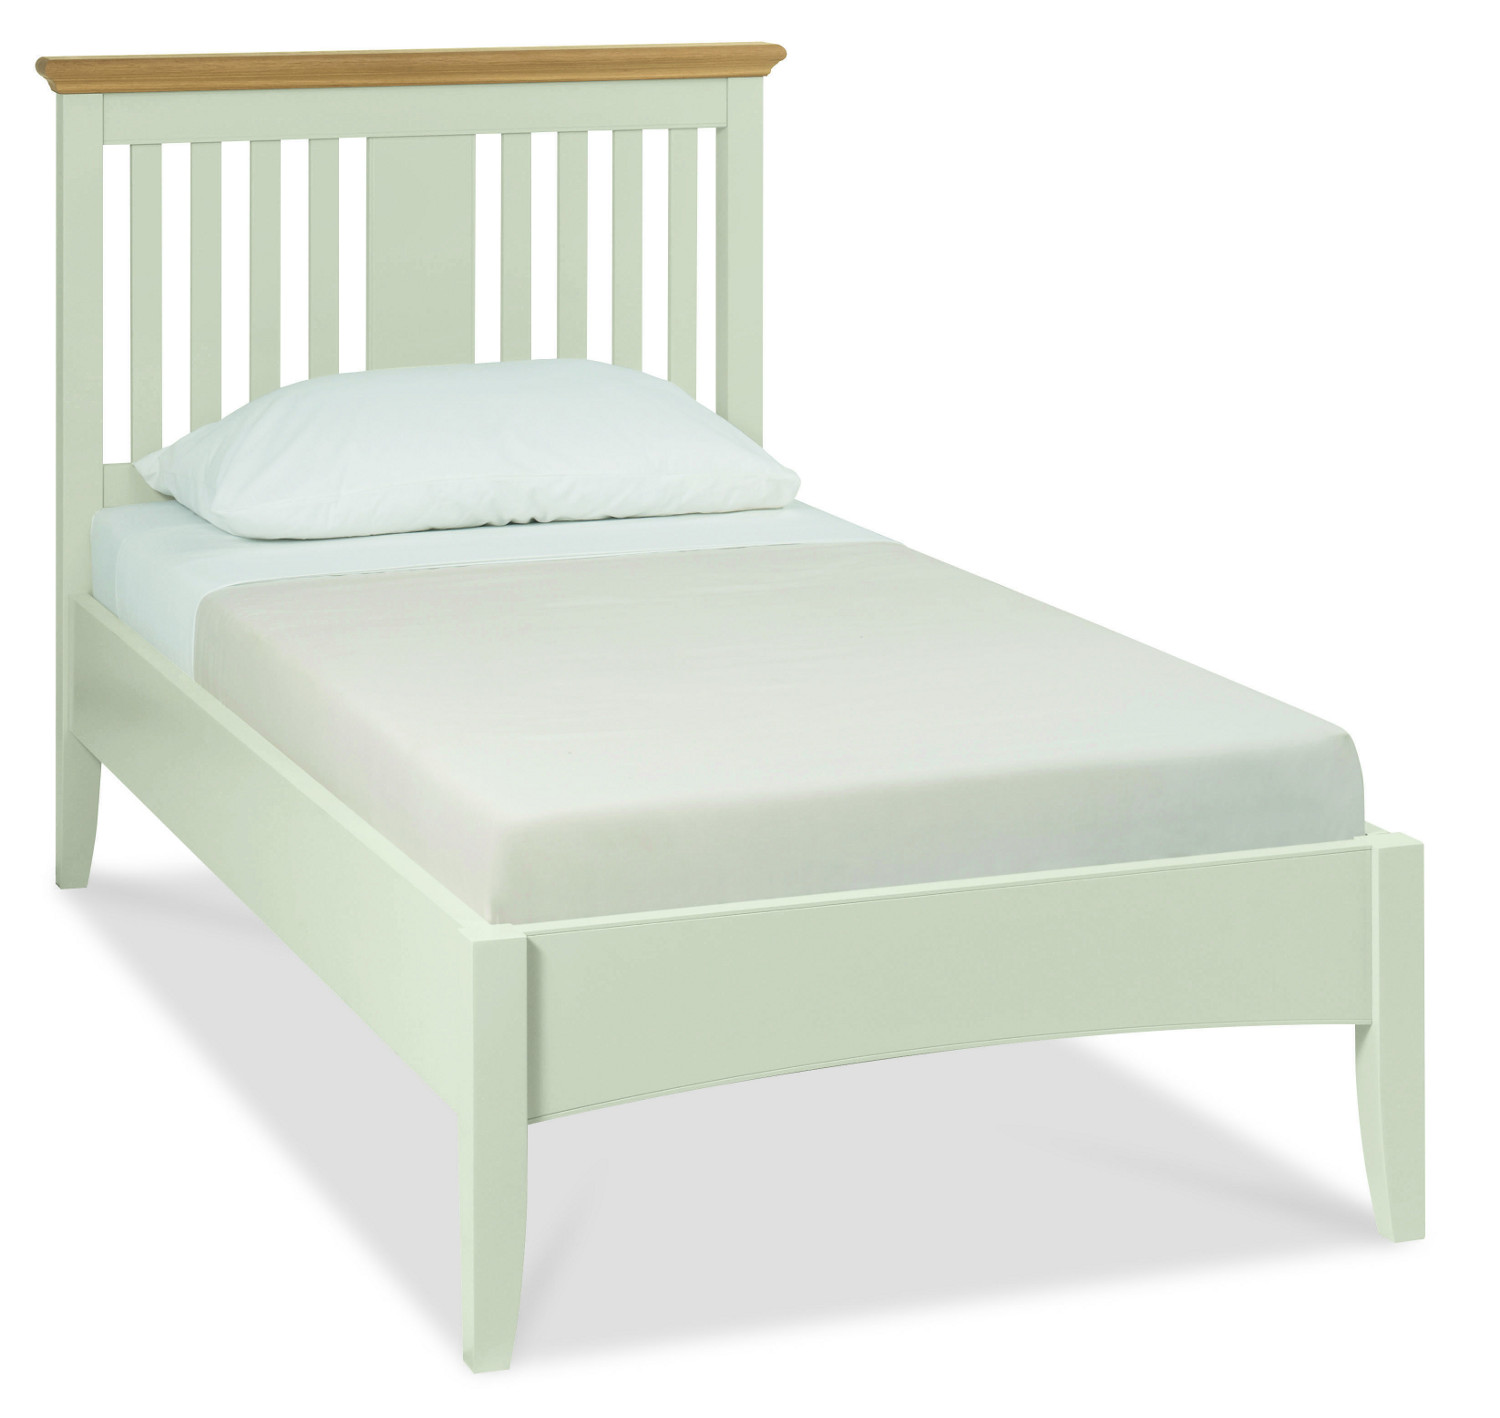 Hampstead Soft Grey and Oak Bedstead - Multiple Sizes (Hampstead Soft Grey and Oak Bedstead - Single)